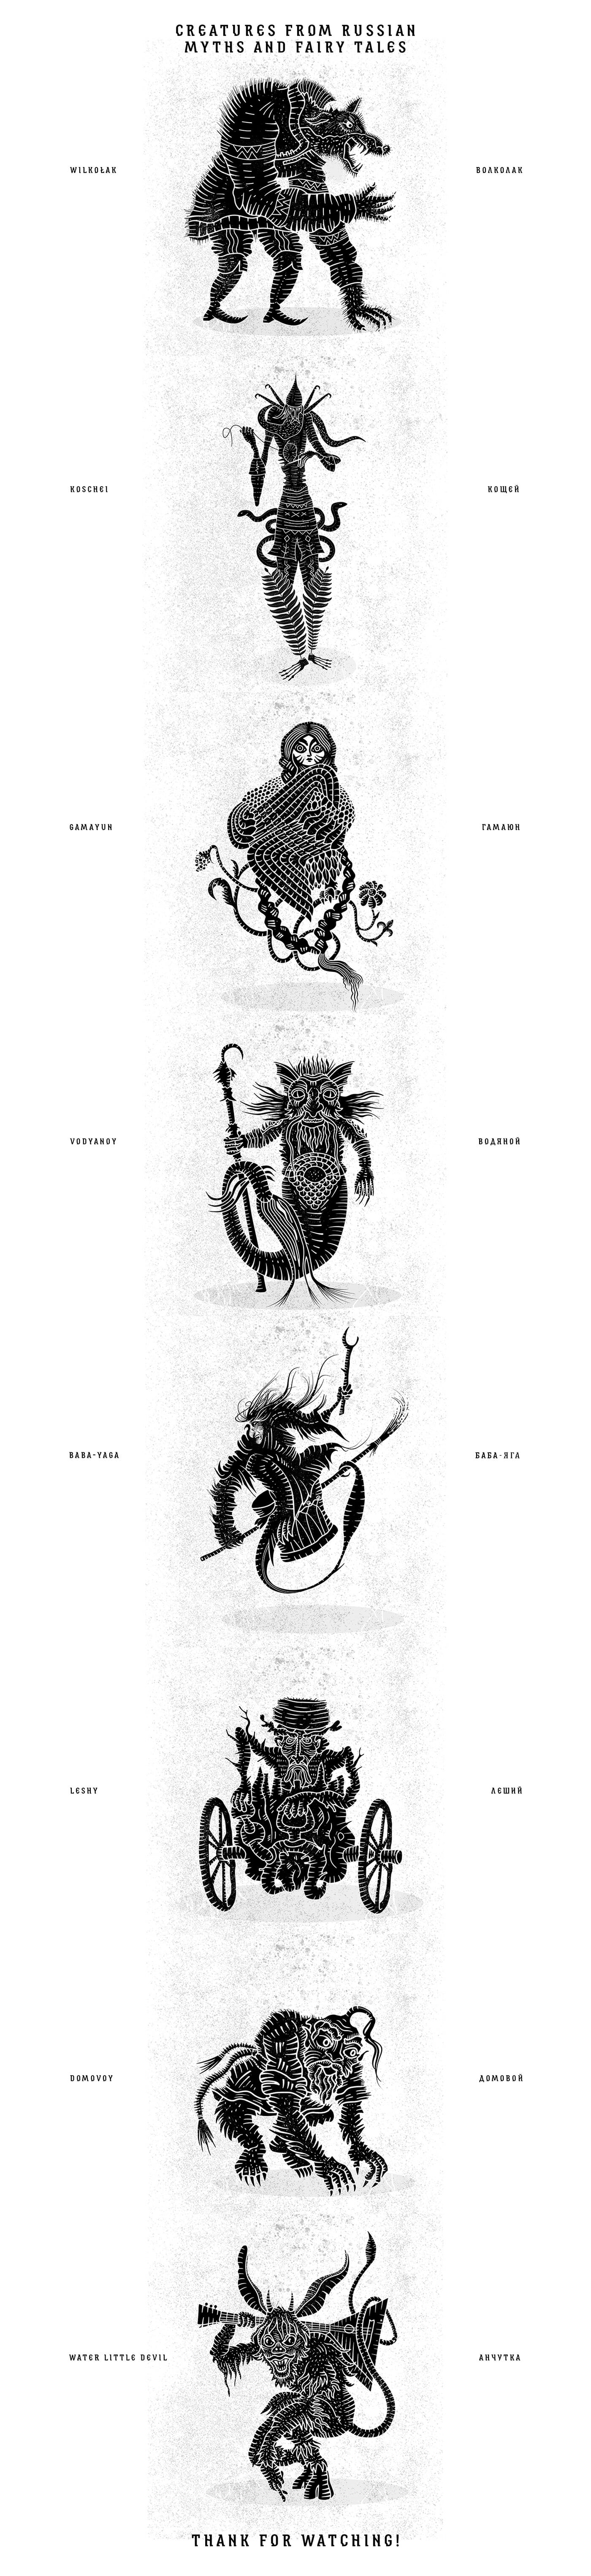 Russian creatures from myth and fairy tales